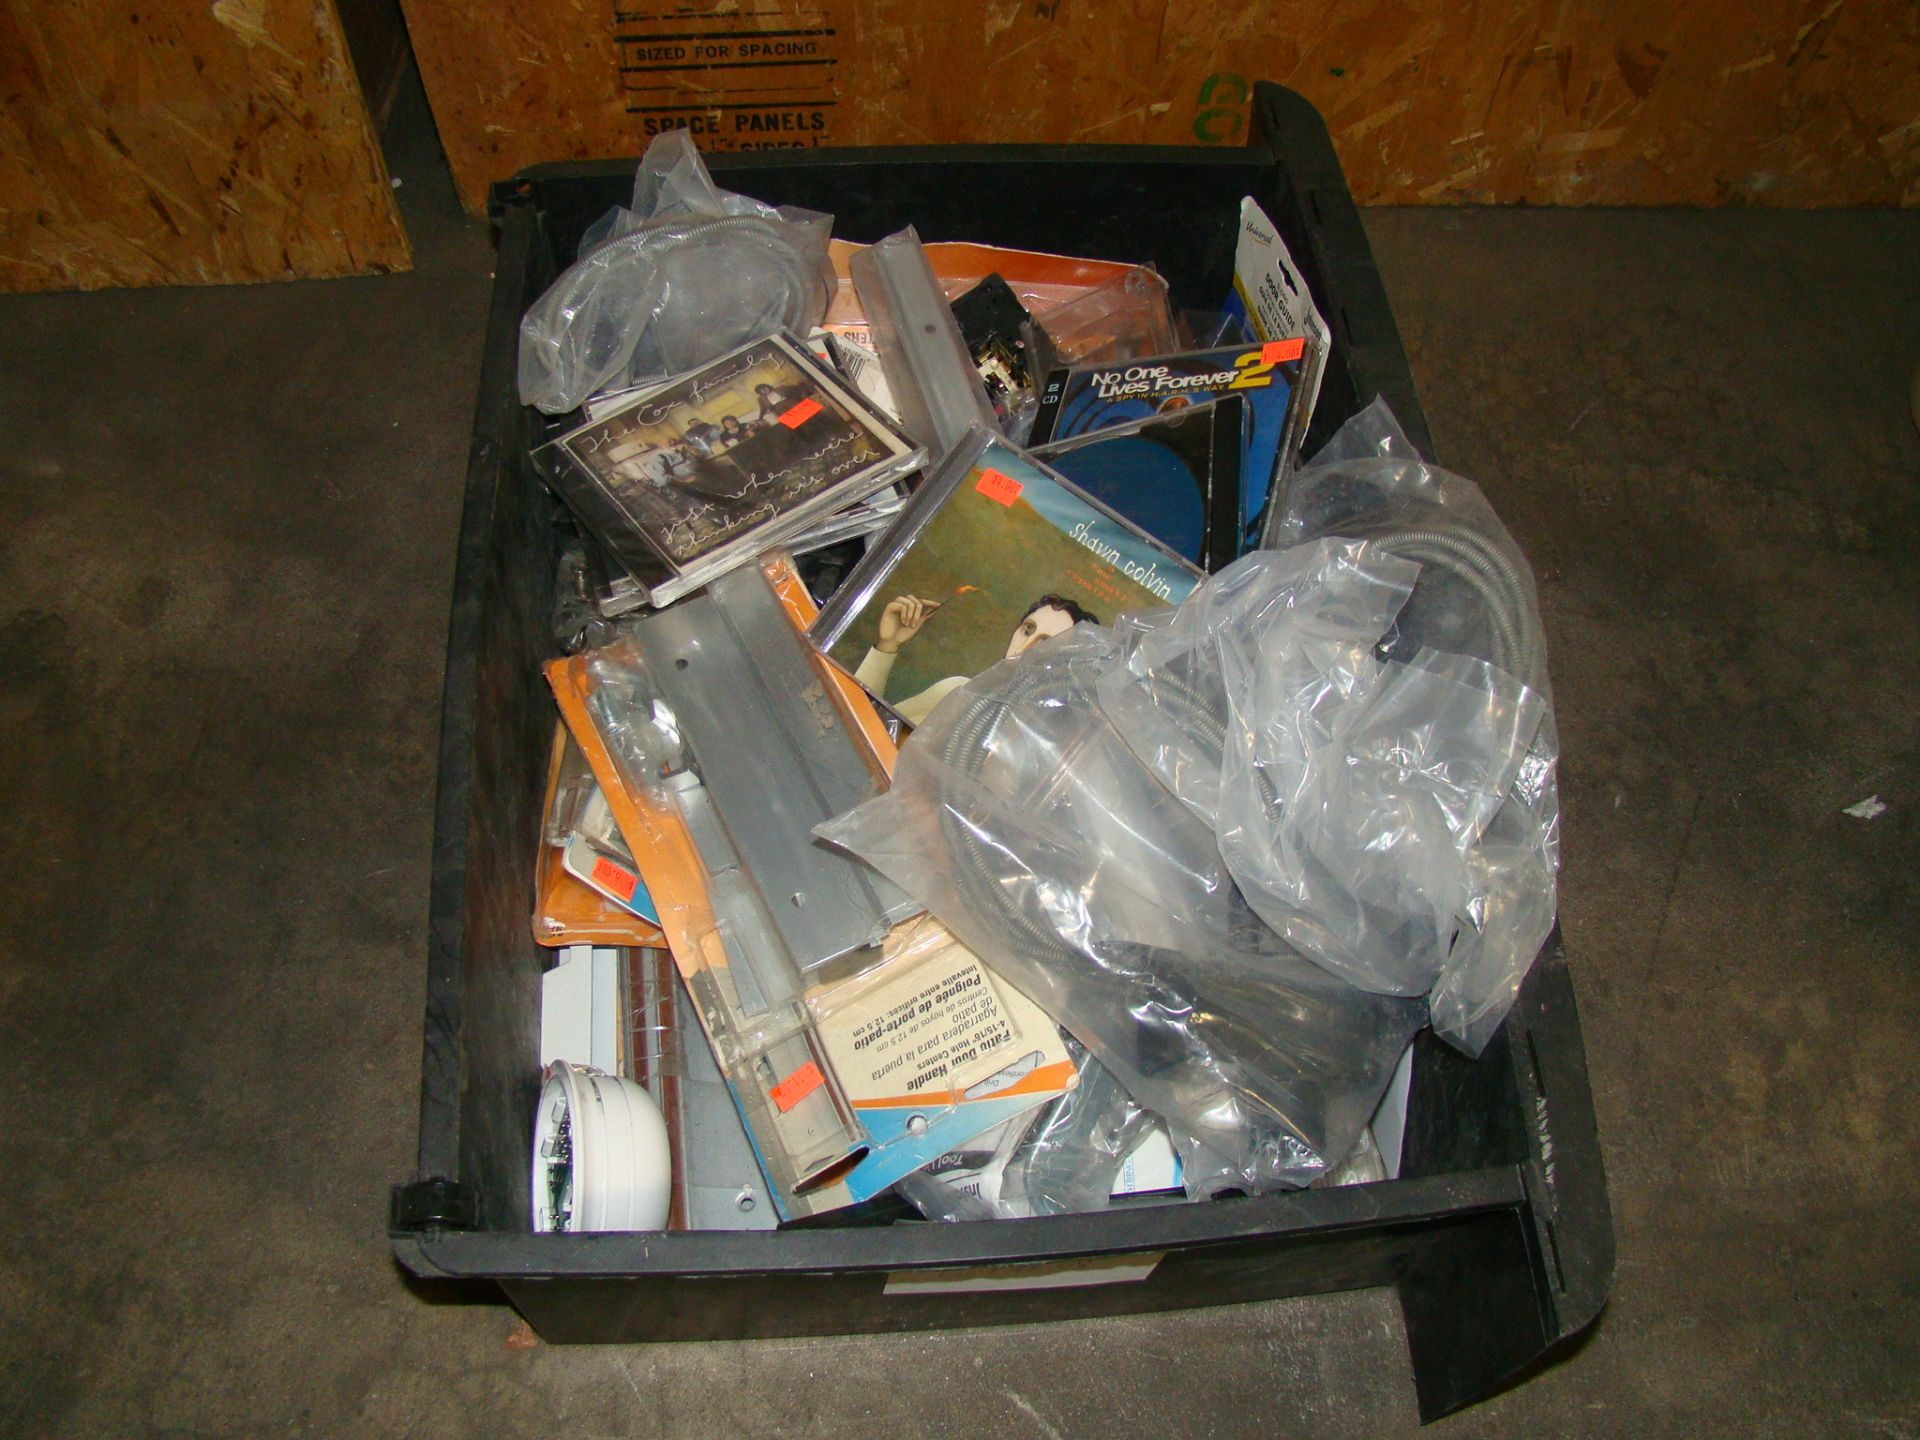 Lot 48 - Drawer of misc-cds, hardware